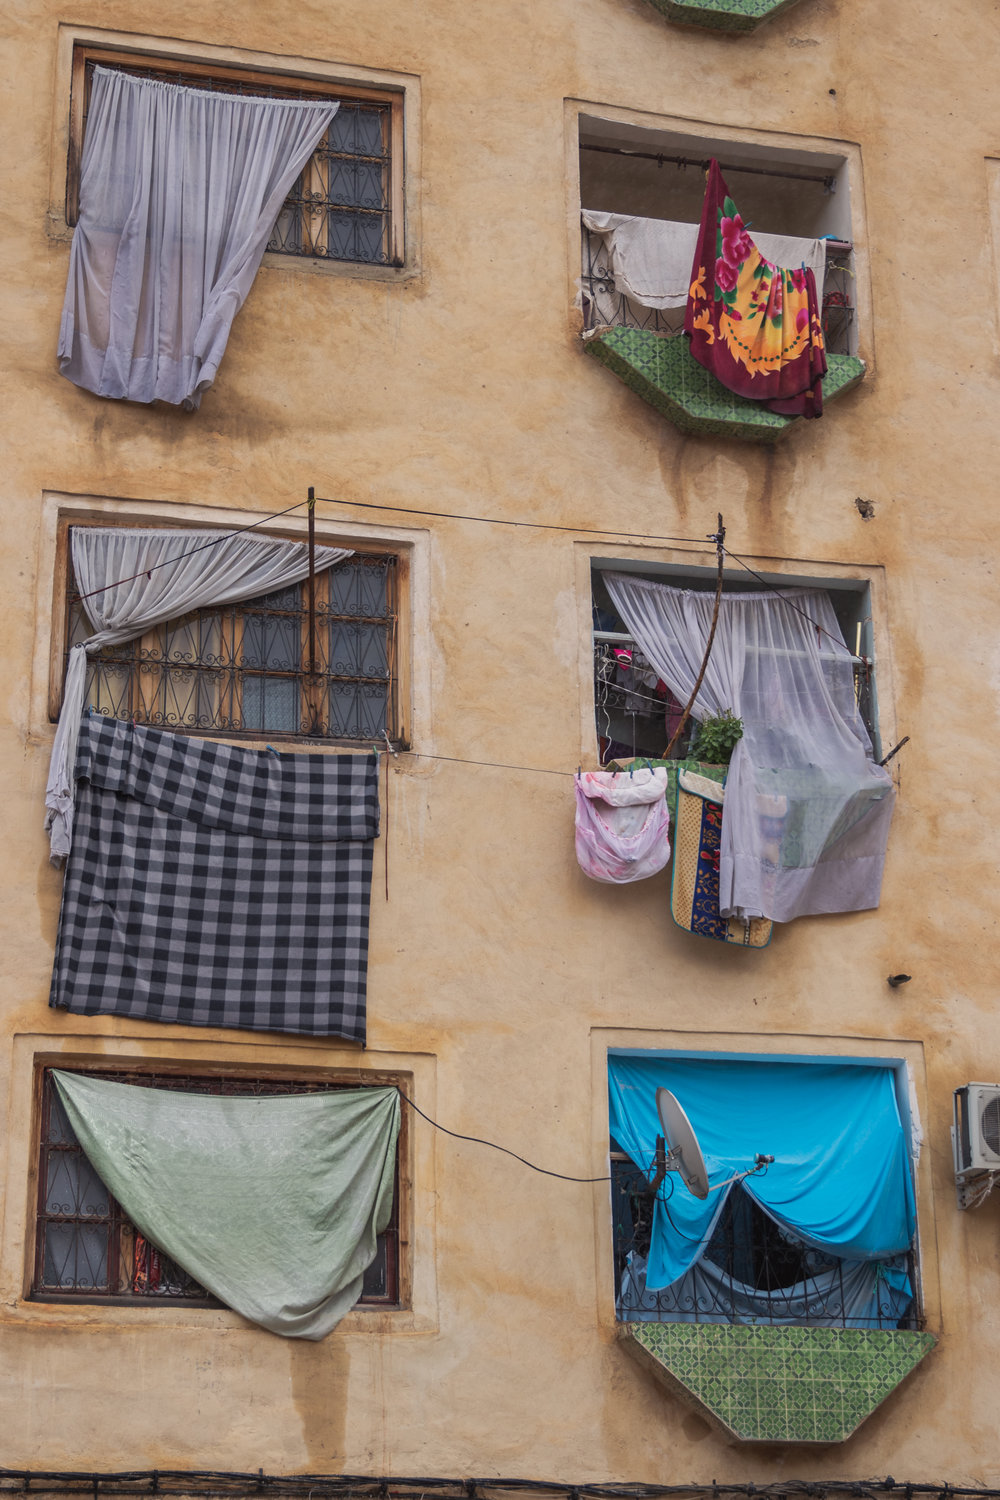 window drapes of different colours and patterns on an apartment building in Fez Morocco